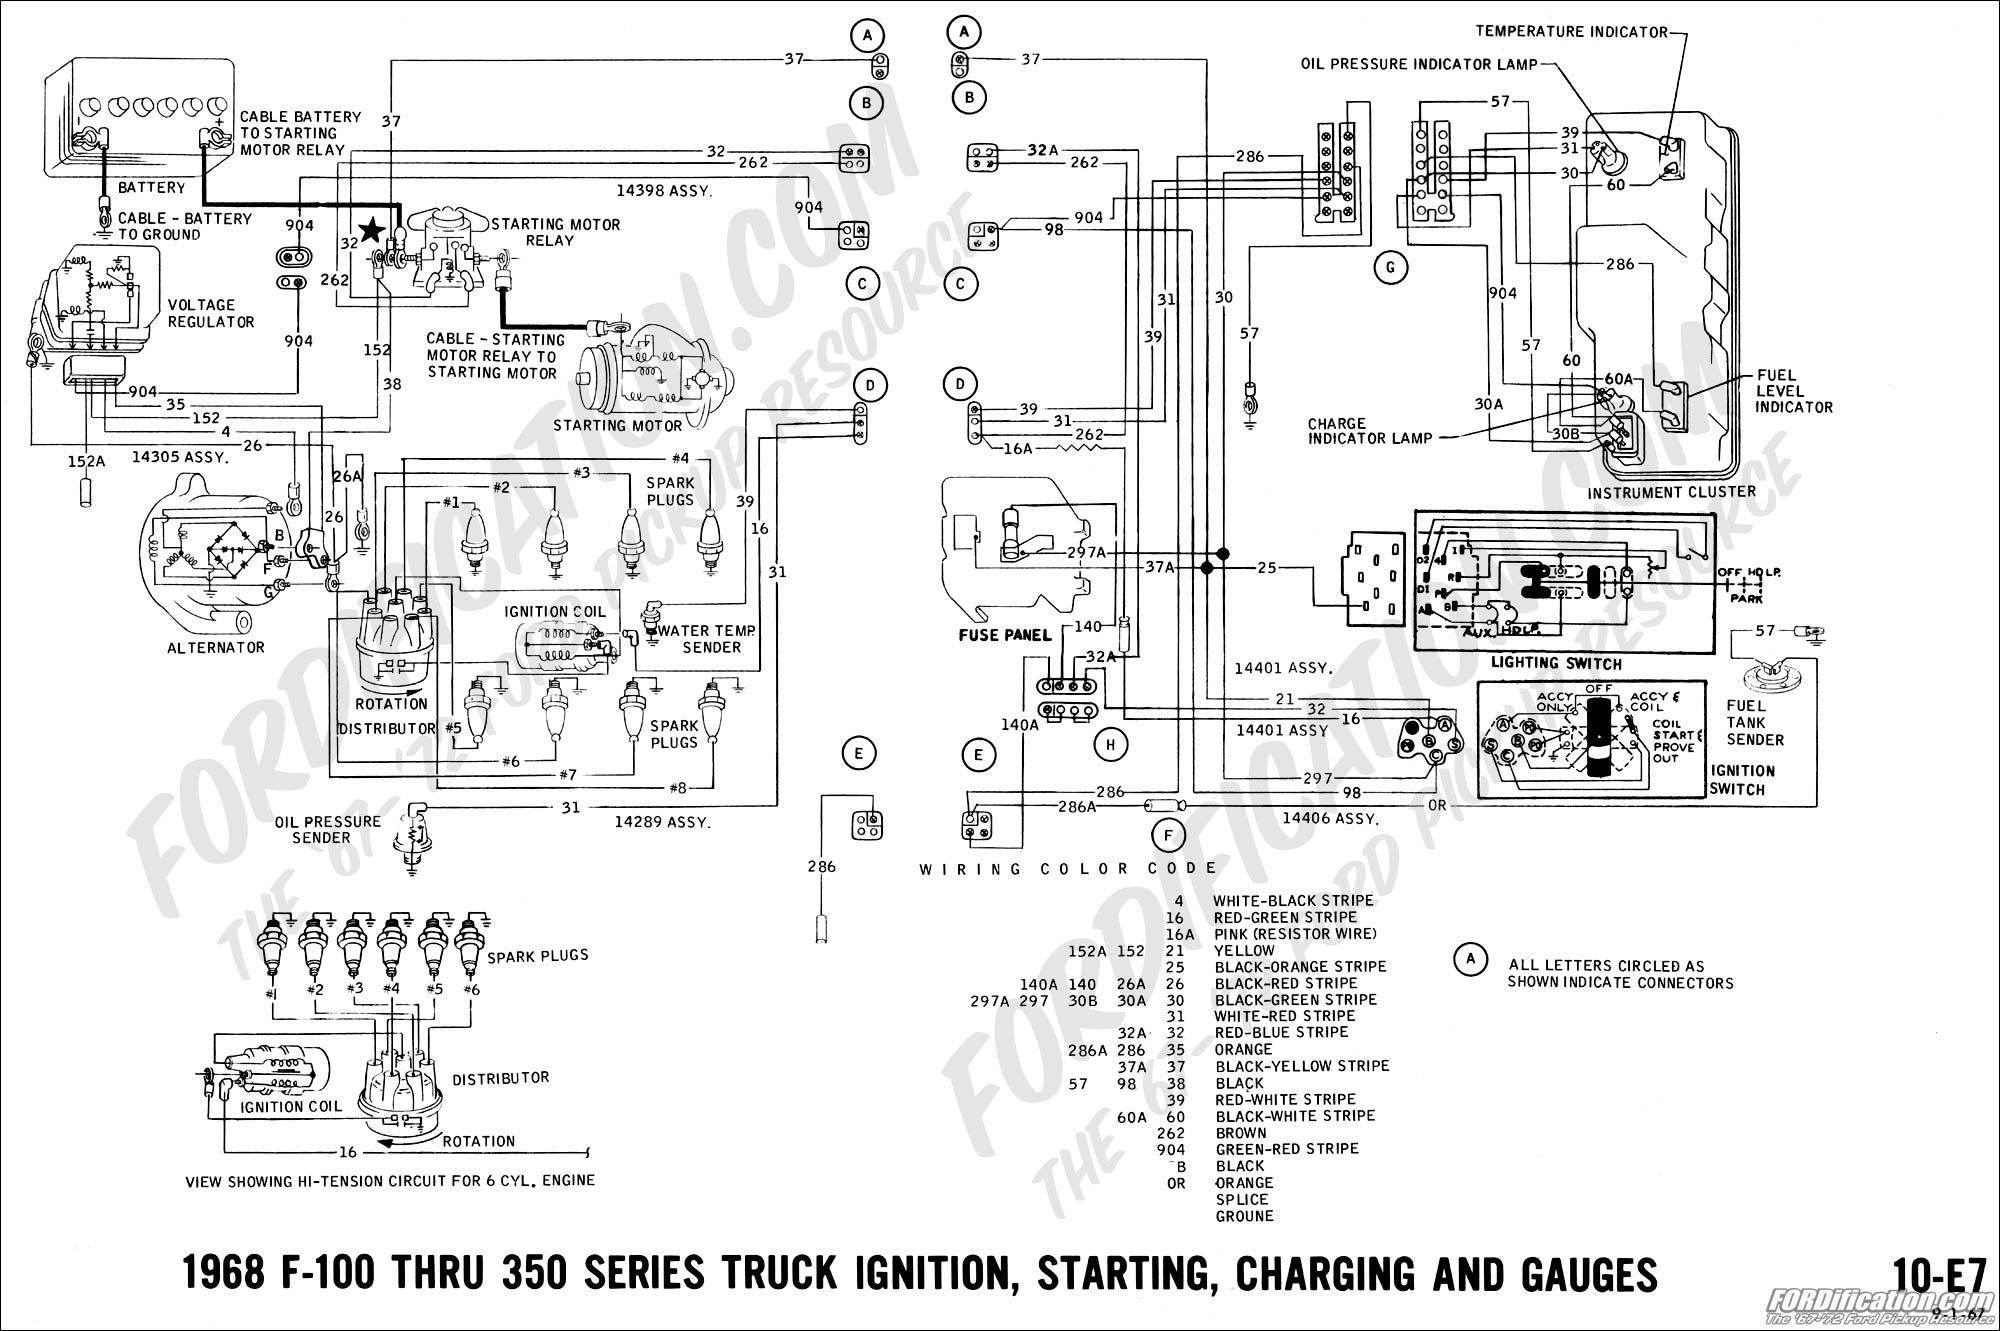 68 09 ford truck technical drawings and schematics section h wiring 1999 F150 Radio Wiring Diagram at bakdesigns.co